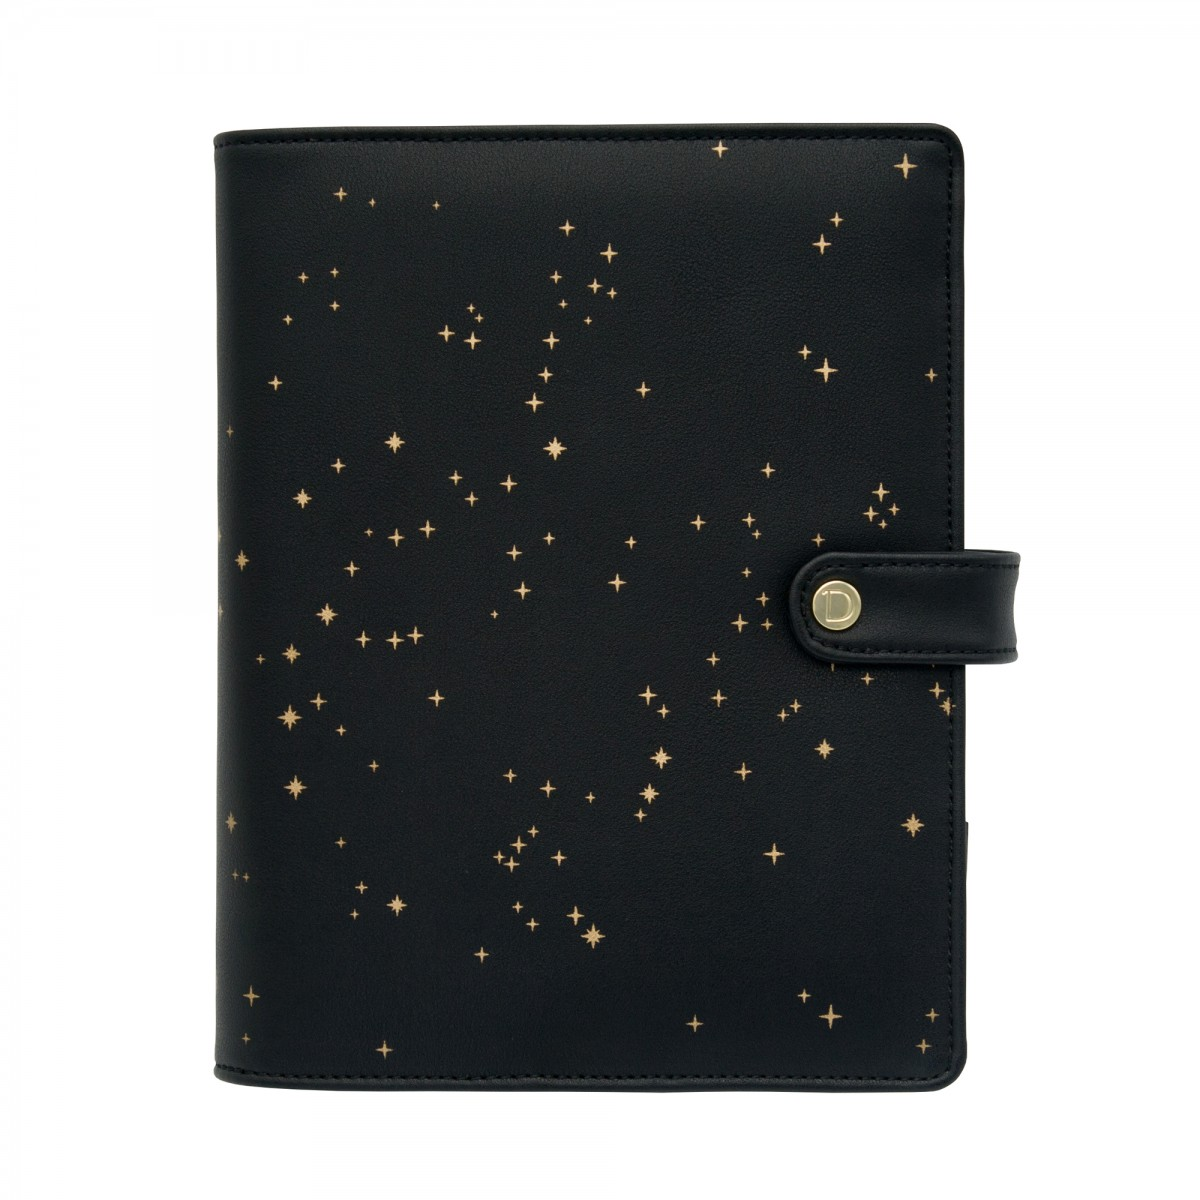 DISCAGENDA CONSTELLATIONS A5 SNAP CLOSURE